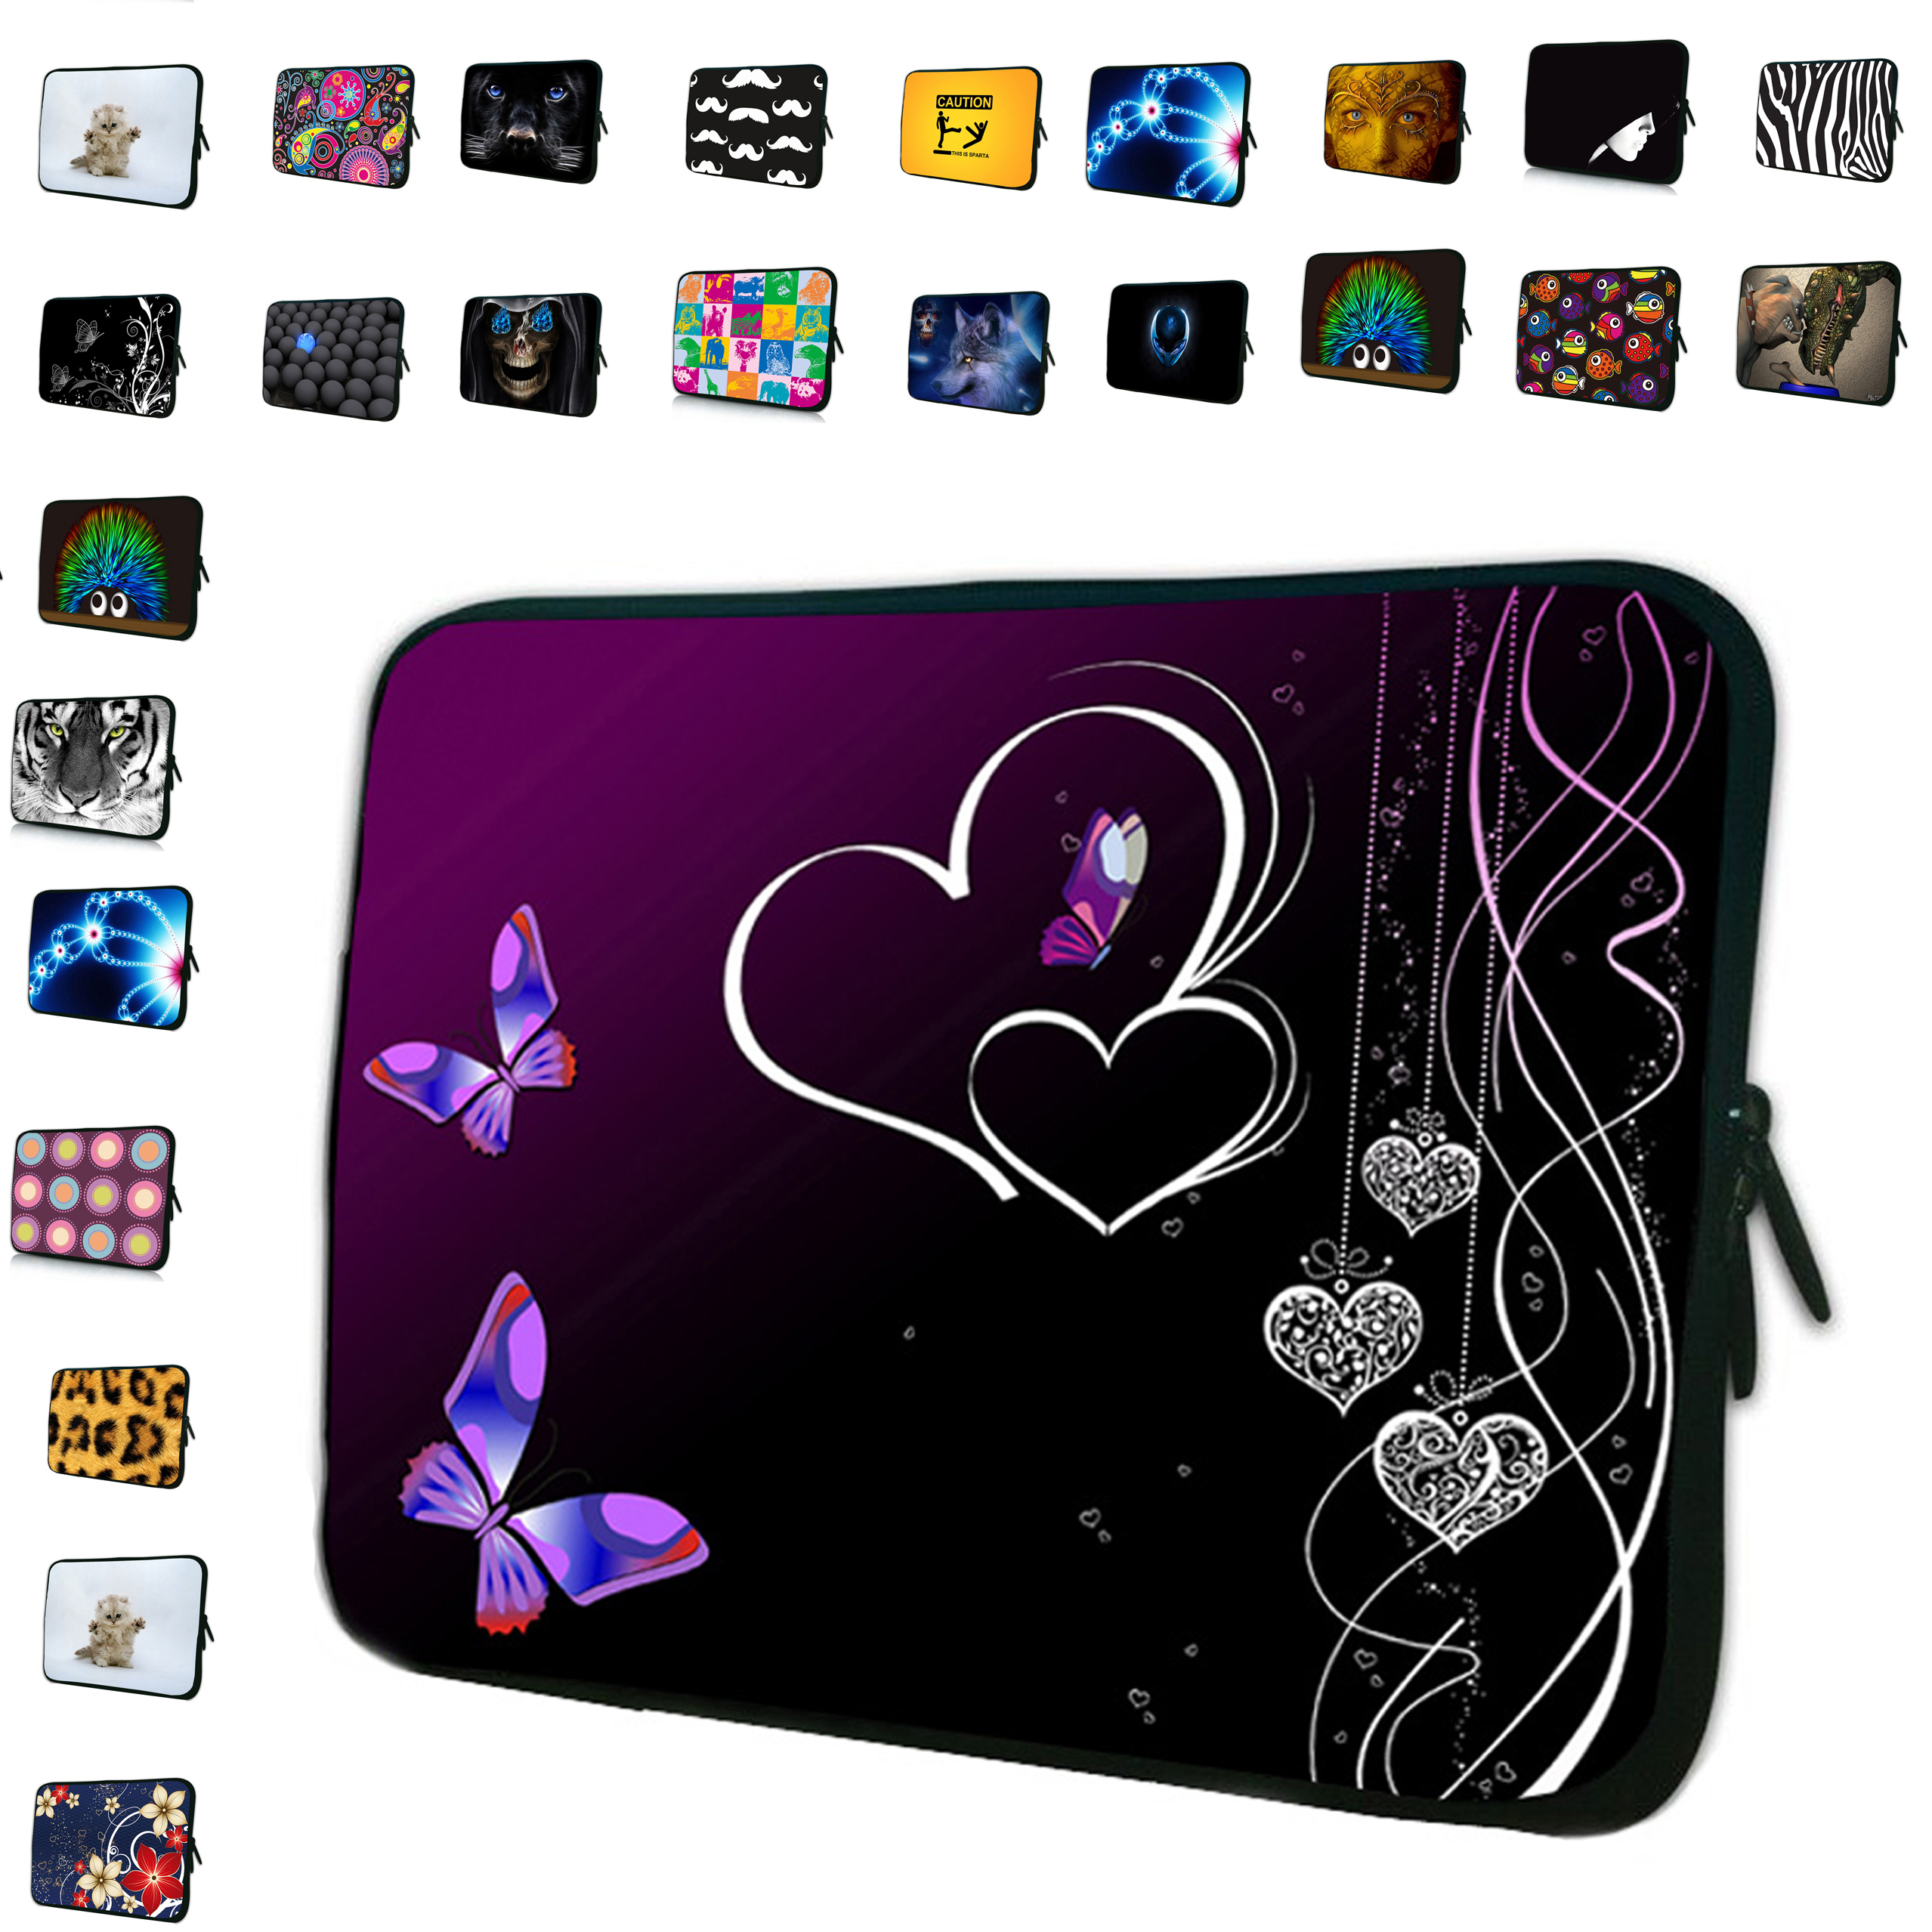 Hot Sale 15 15.4 15.6 15.5 inch Laptop Notebook Computer PC Sleeve Bag Cover Cases Pouch For HP WASD 15 HASEE 15.6 Dell